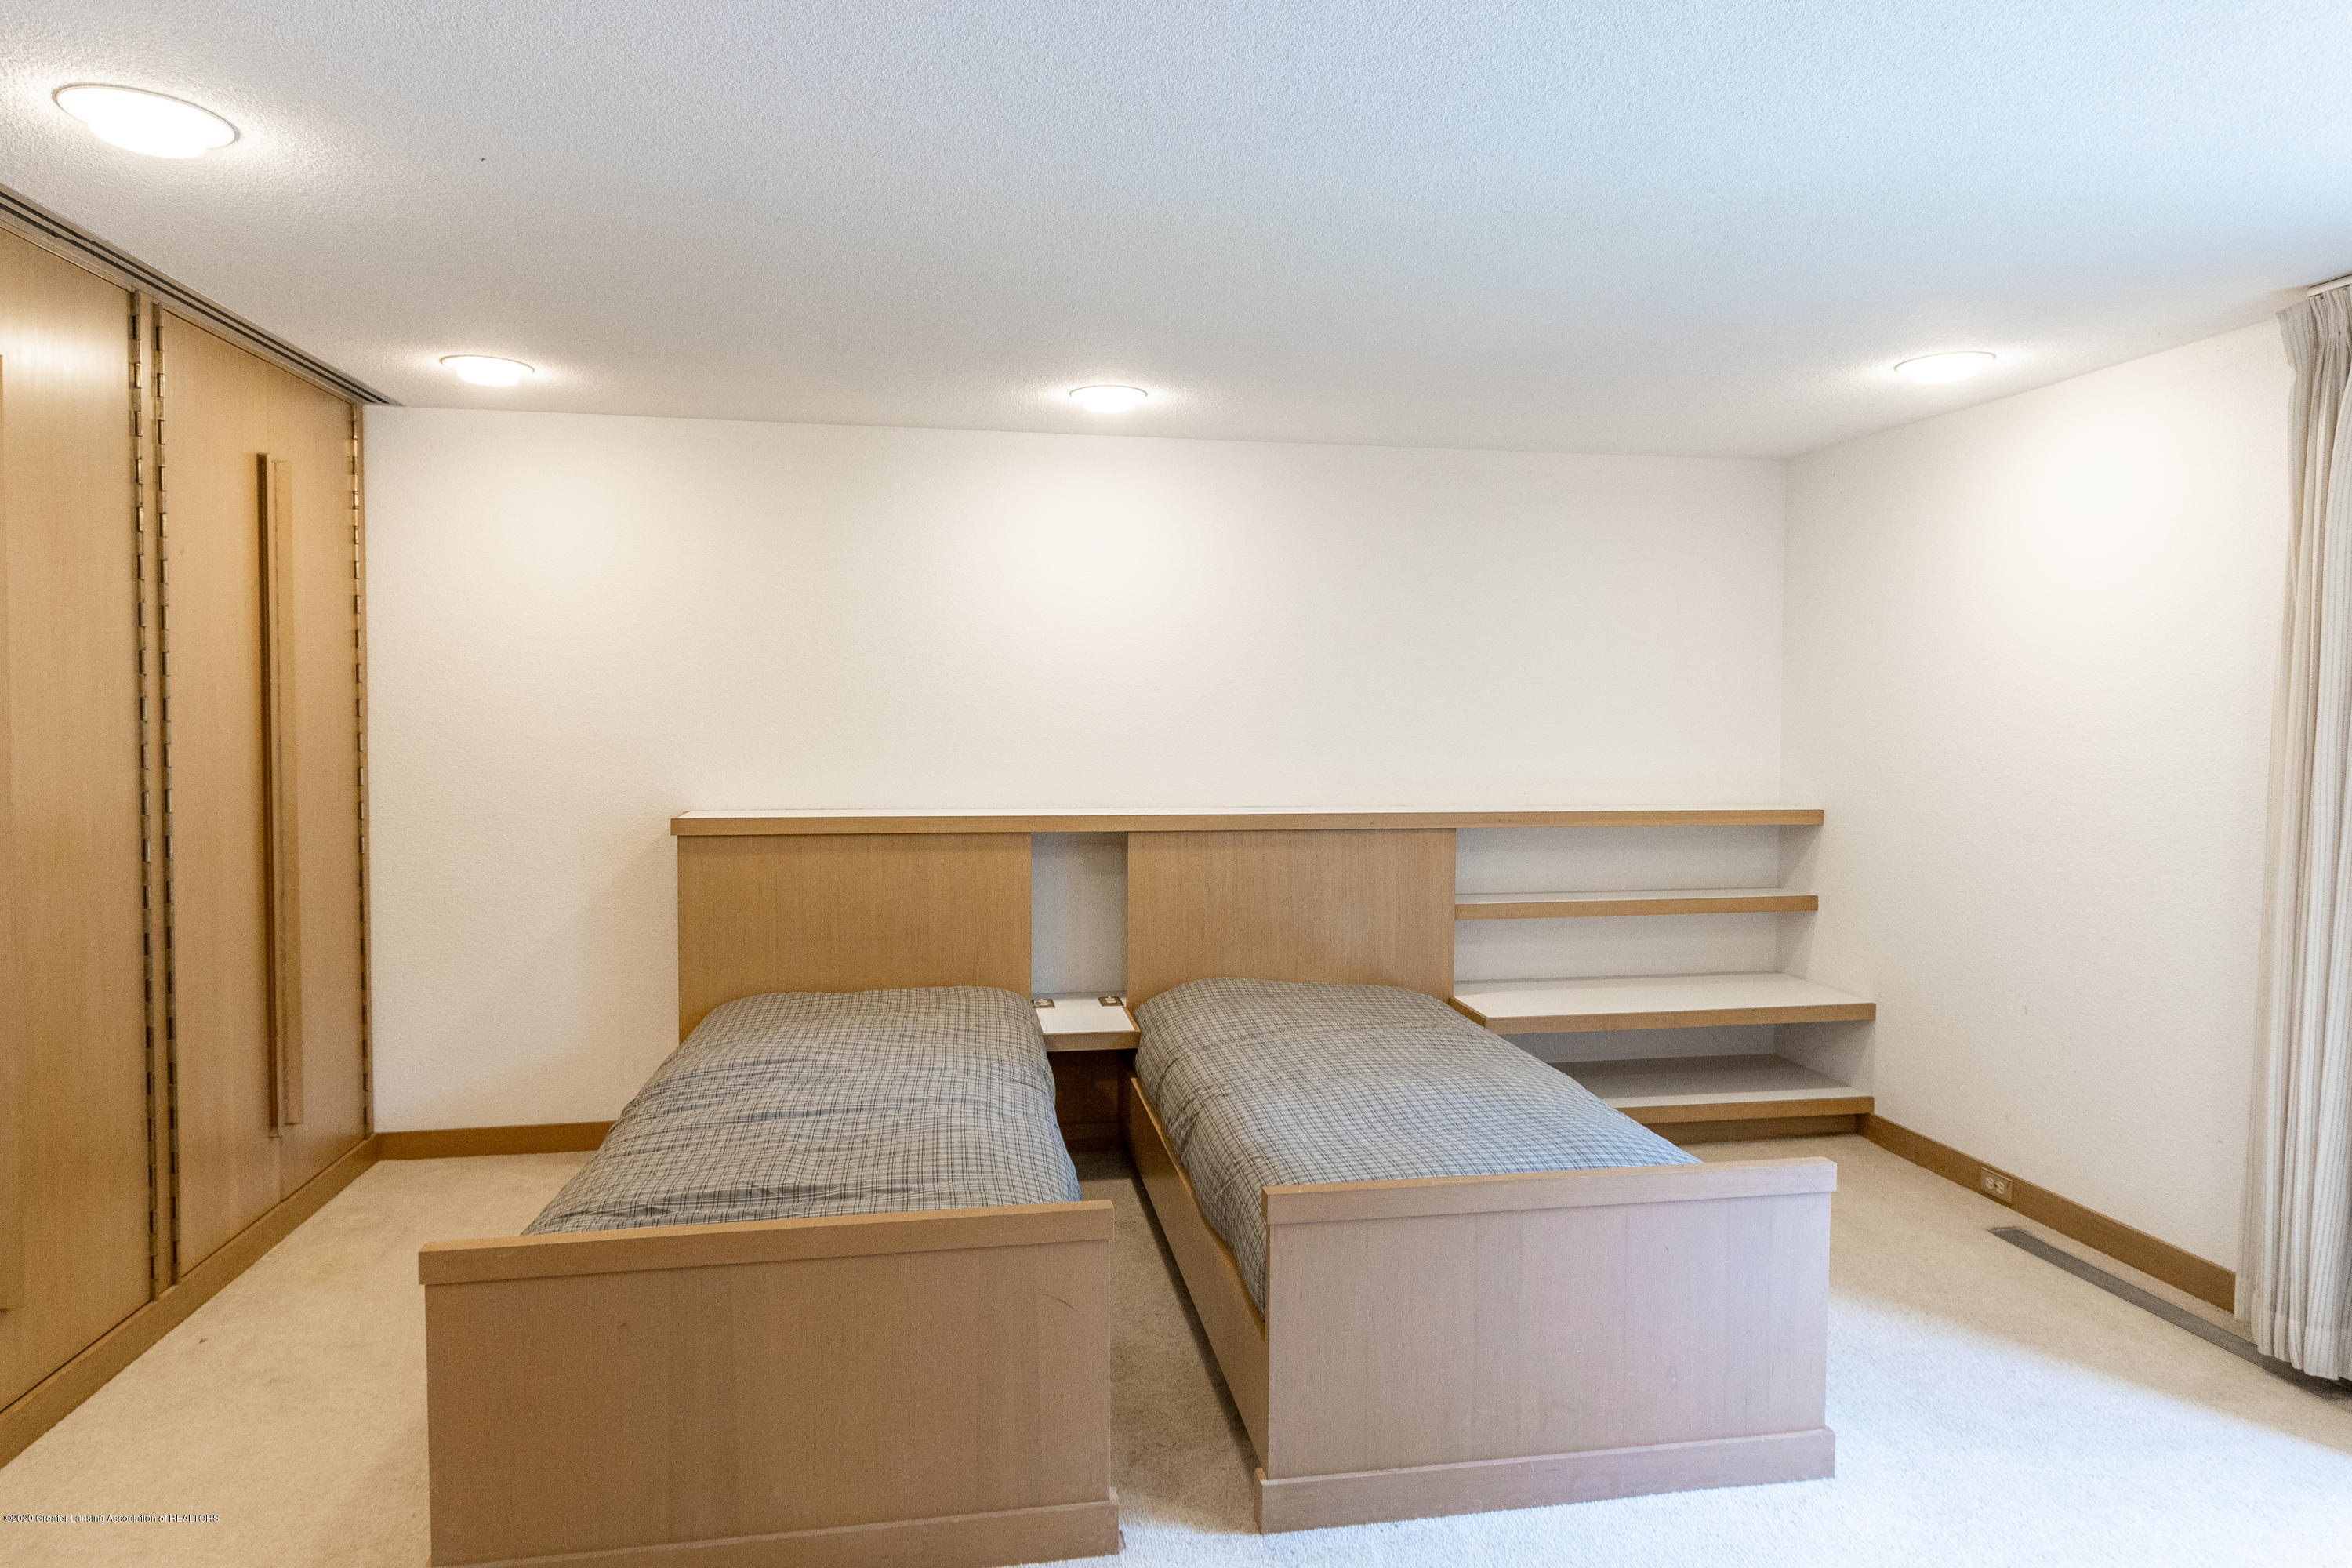 1172 Wrightwind Dr - Bedroom 2 - 60